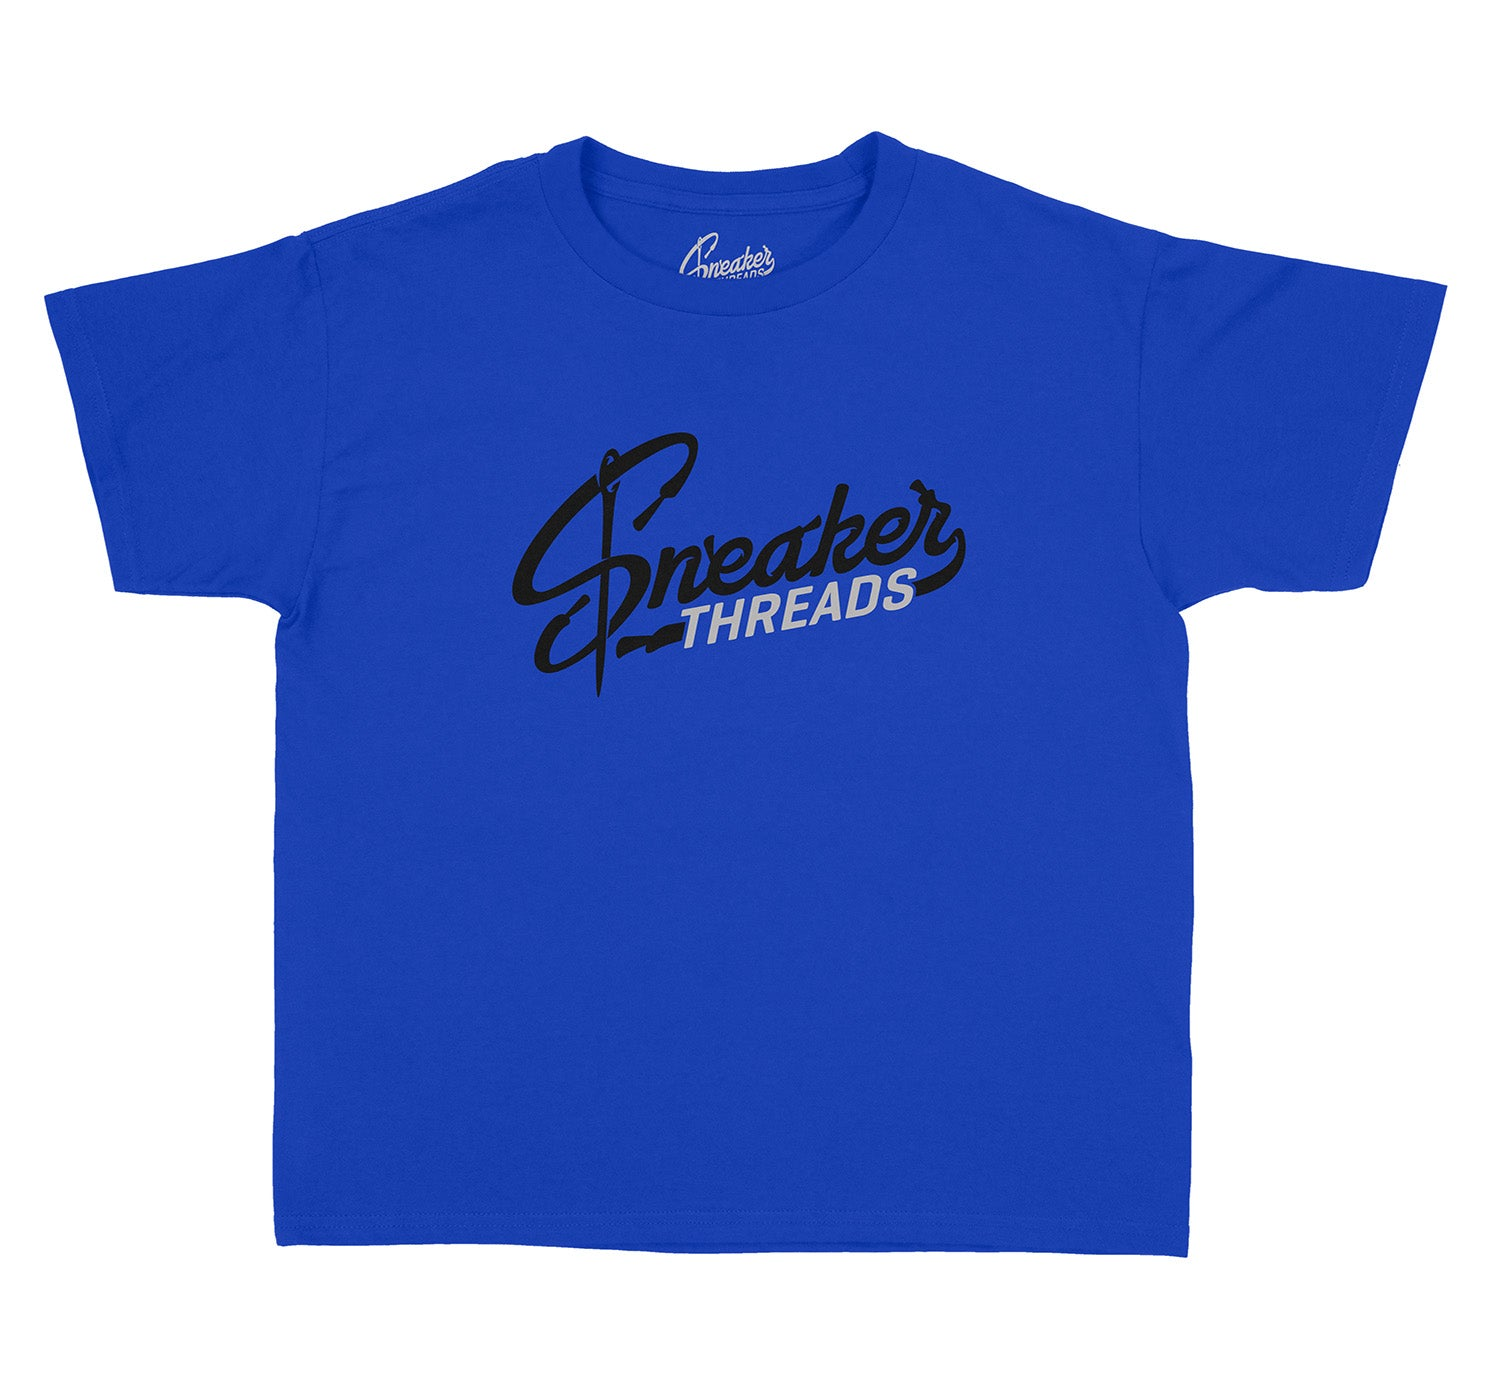 Sneaker Kids shirts matching with Jordan 12 royal game sneakers